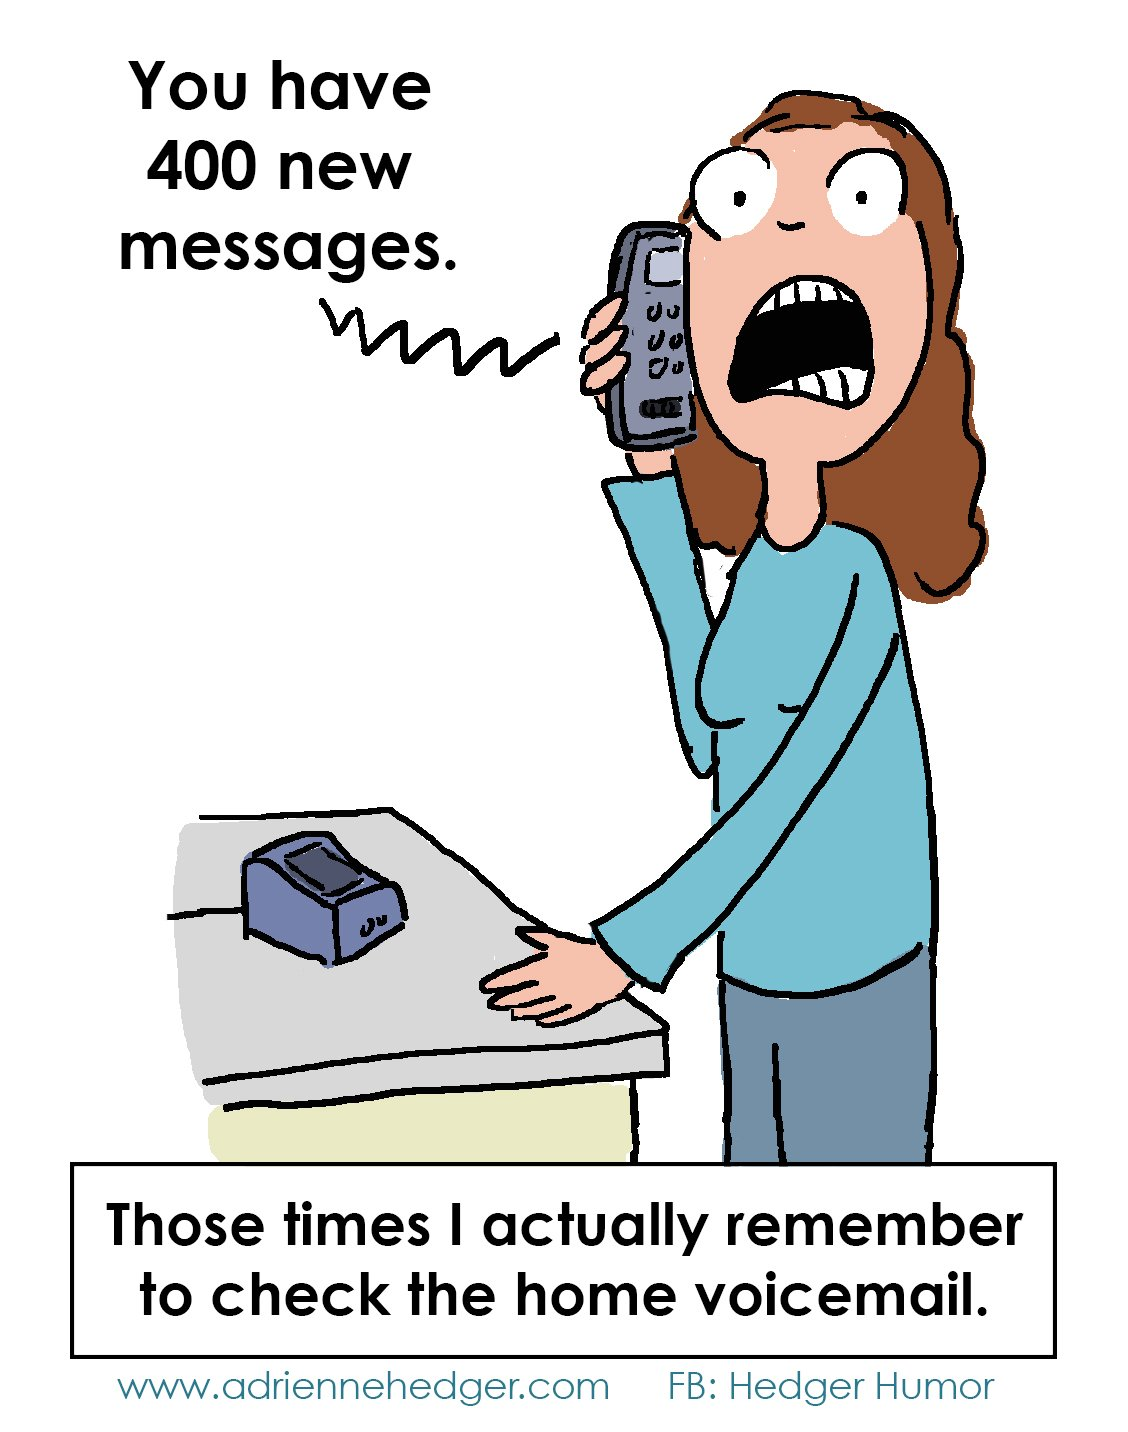 Waiting BD: Funny Answering Machine & Voicemail Messages! |Voicemail Funny